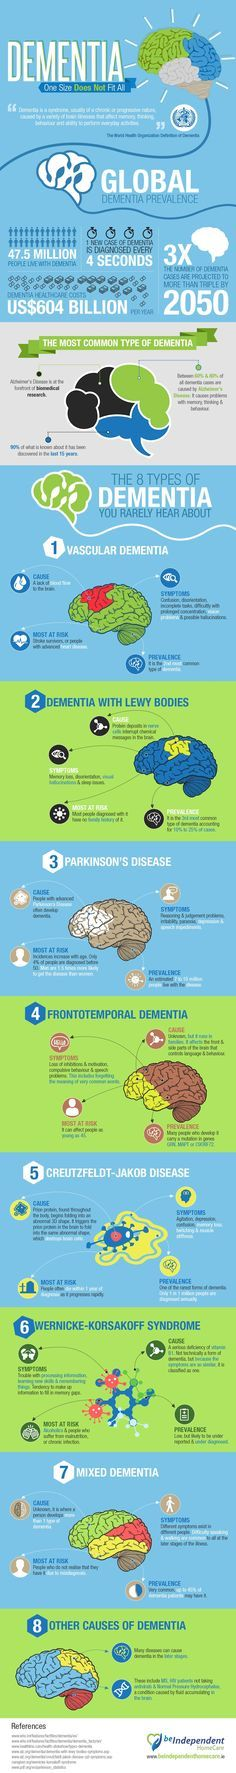 Did you know that not all dementia is Alzheimer's dementia? There are many types of dementia with different symptoms, causes and prognosis. This inforgraphic sums it up.